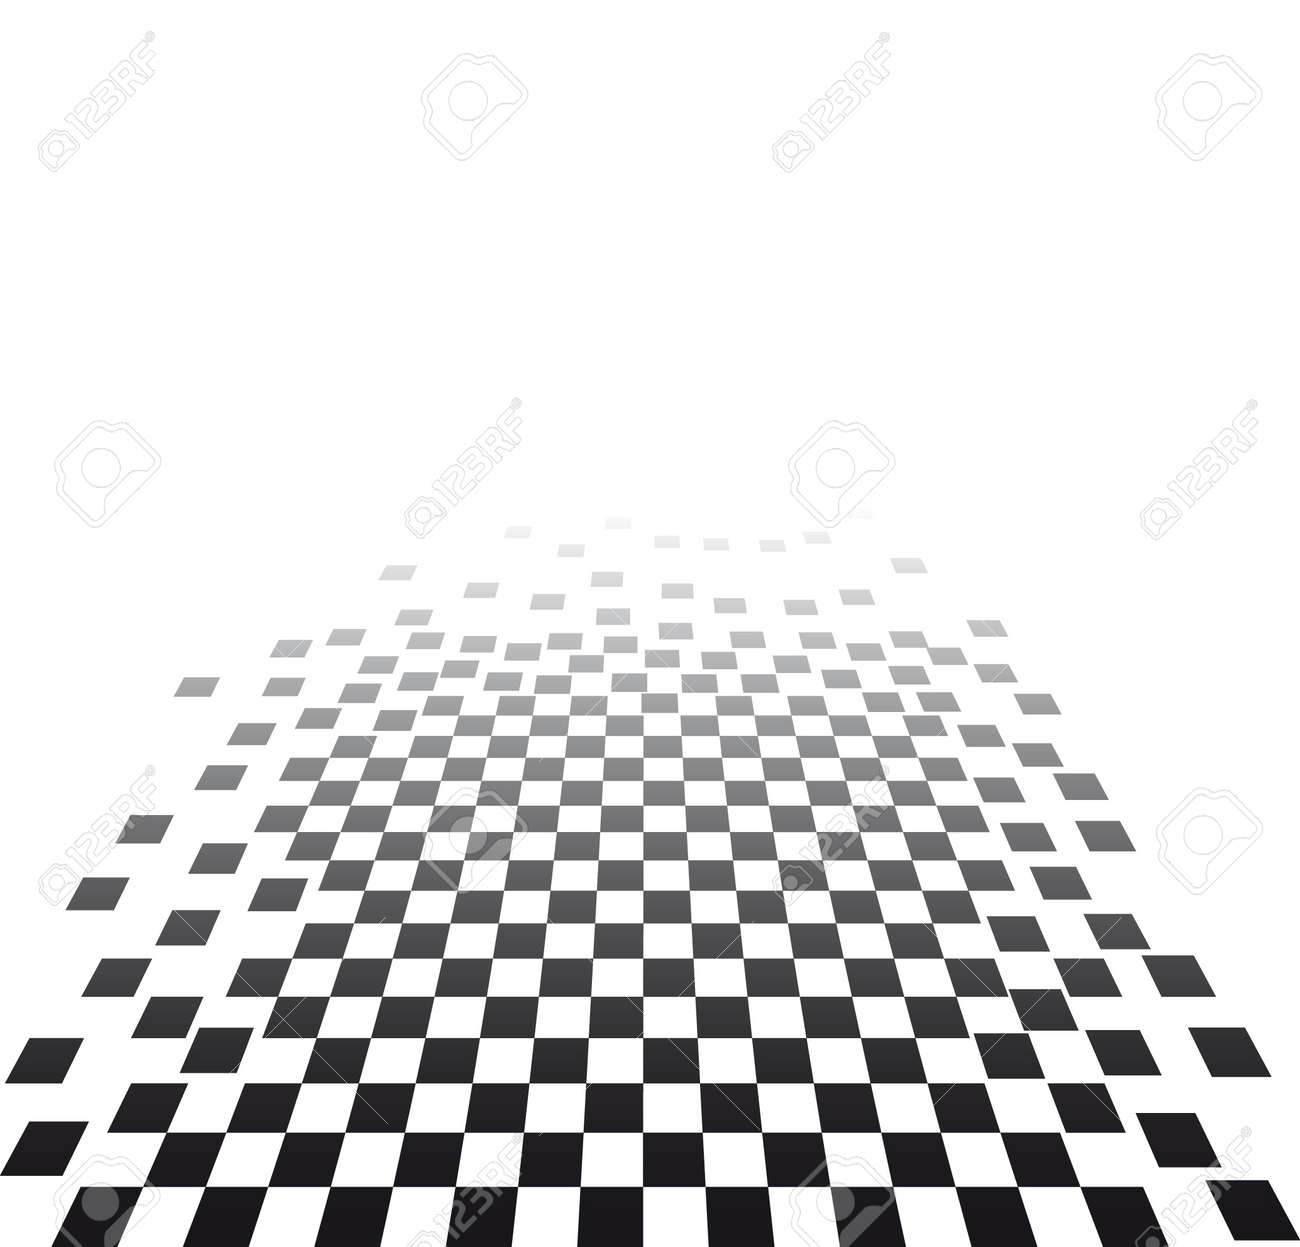 visual effect with chess board Stock Vector - 6139179